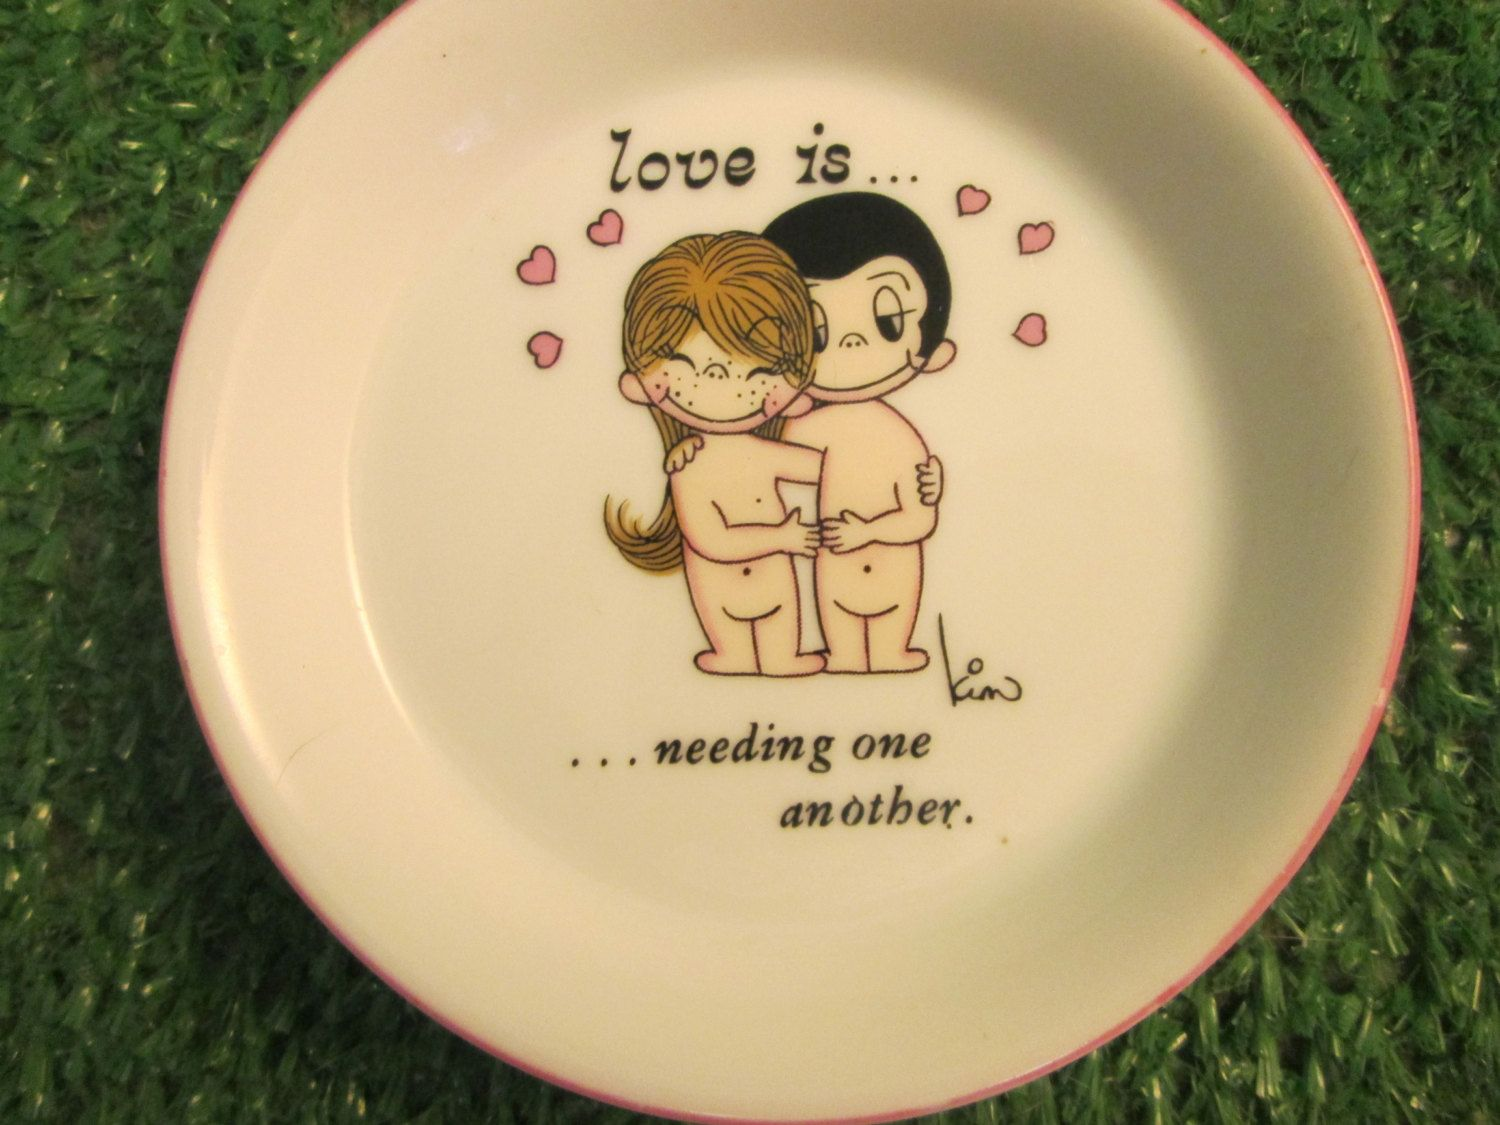 Vintage 1972 george good corporation love iseding one another vintage 1972 george good corporation love iseding one another kim nude couple hugging small dish plate kitschy cute retro whimsical kristyandbryce Images